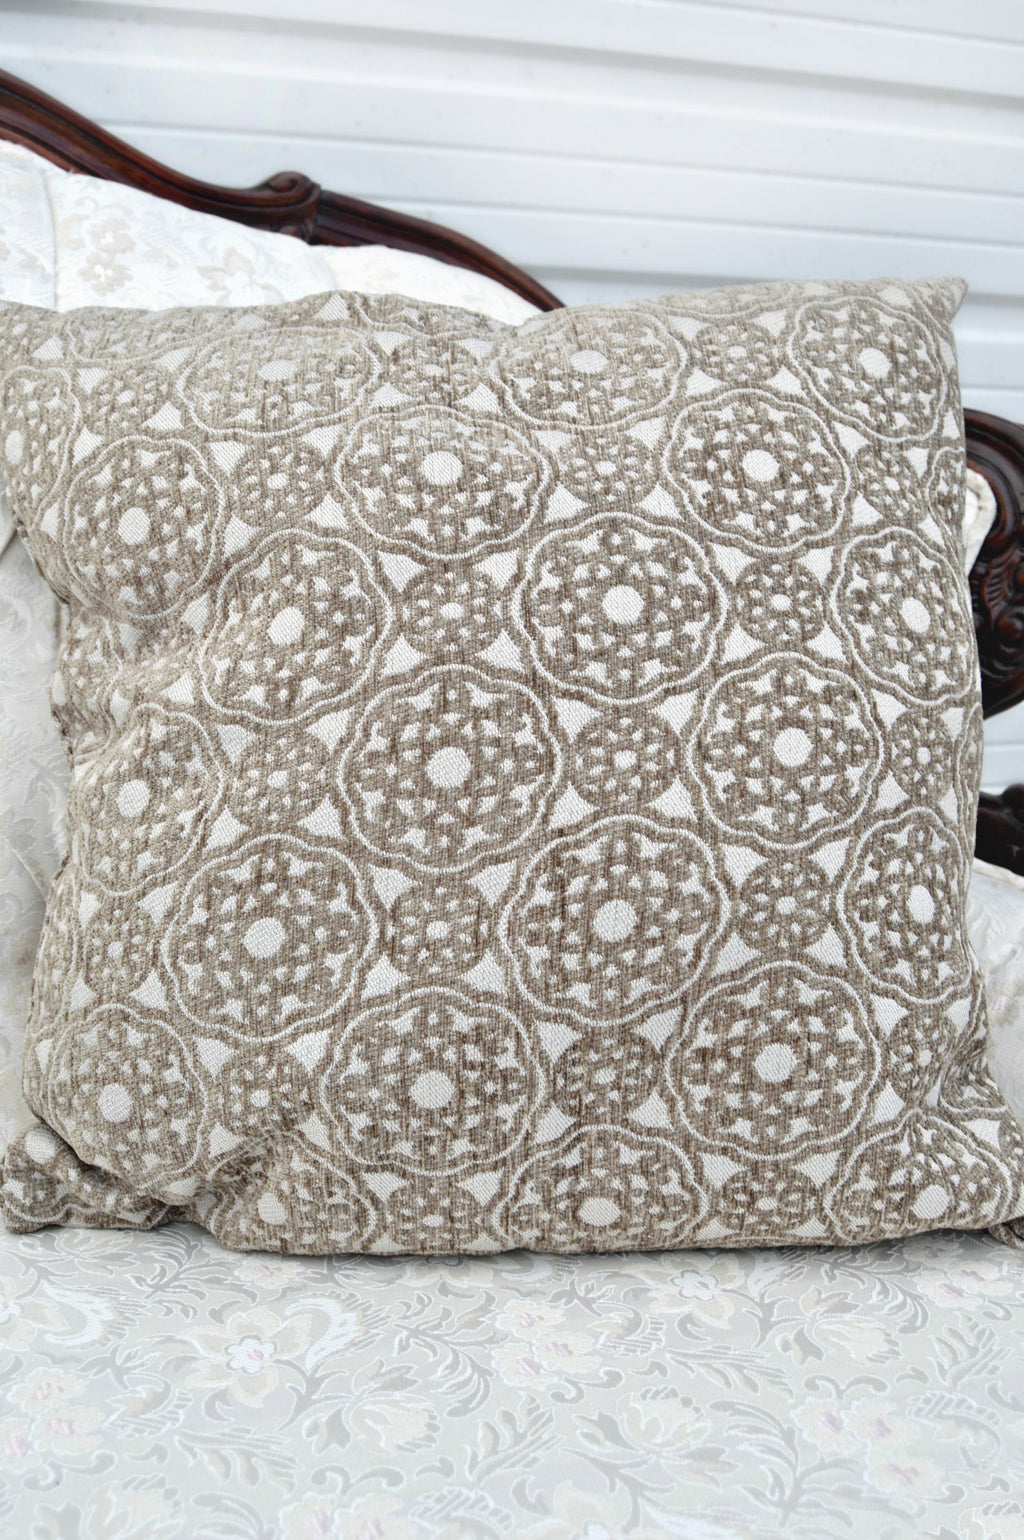 Tan kaleidoscope patterned pillow